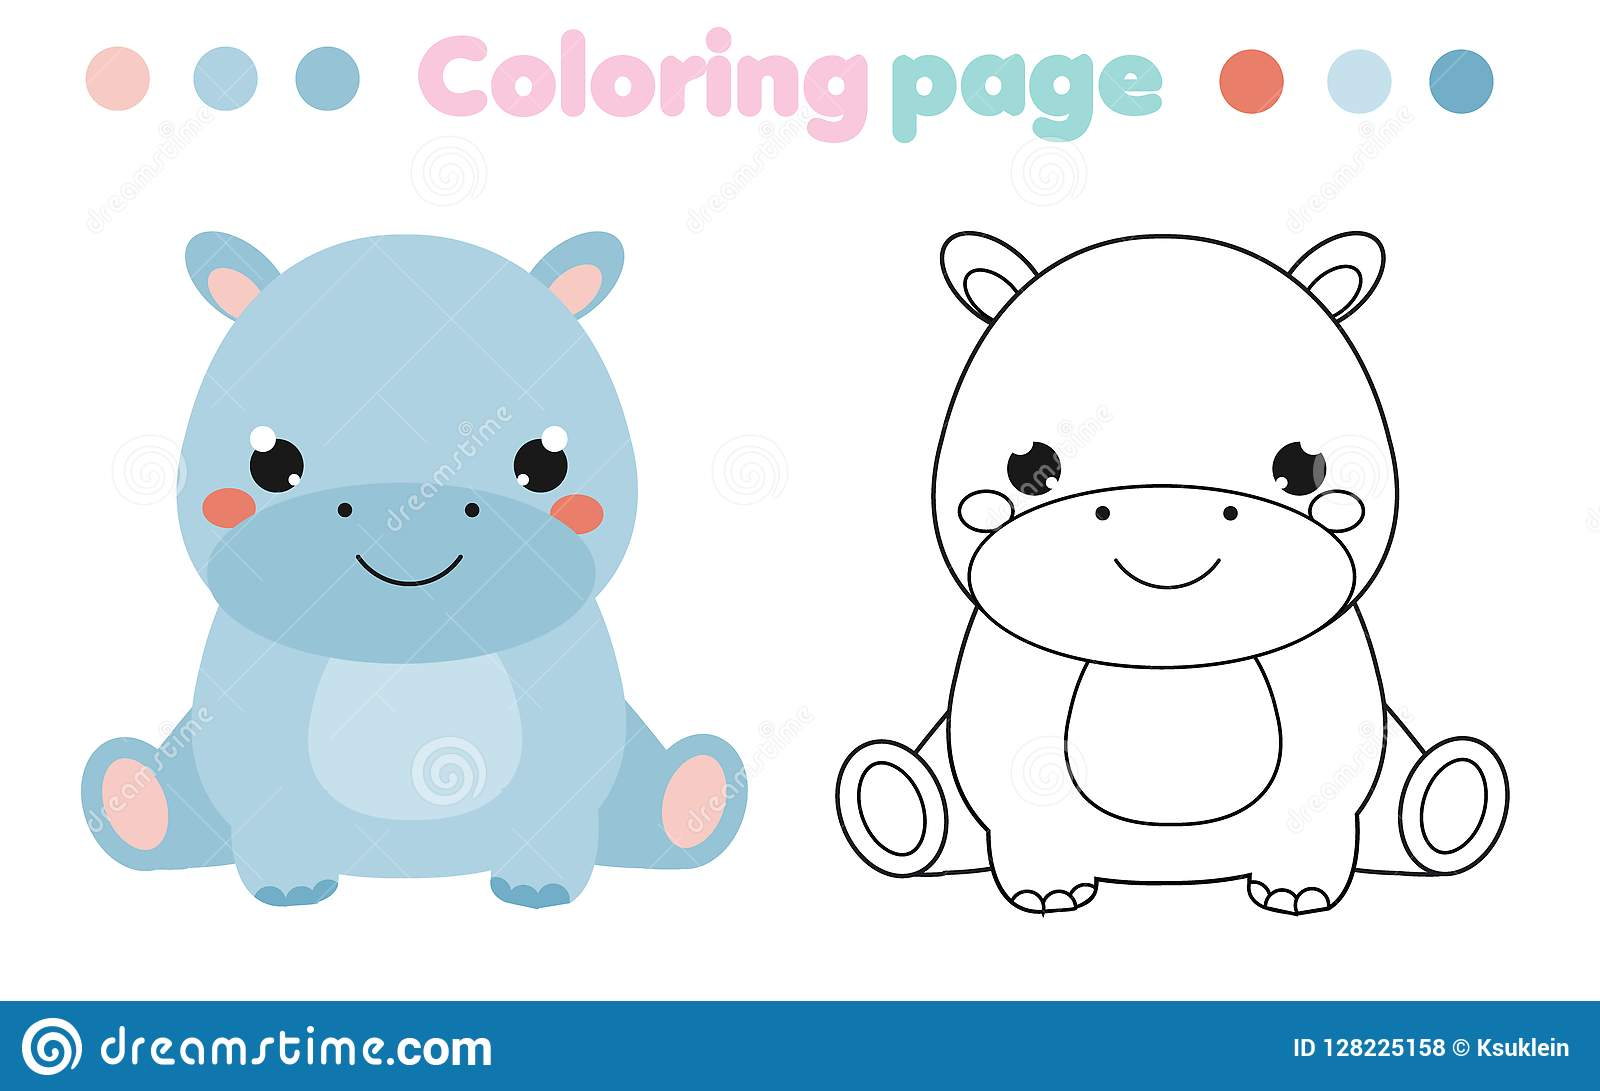 Coloring Page With Cute Hippo Drawing Kids Activity Printable Toddlers Fun Stock Vector Illustration Of Hobby Babies 128225158